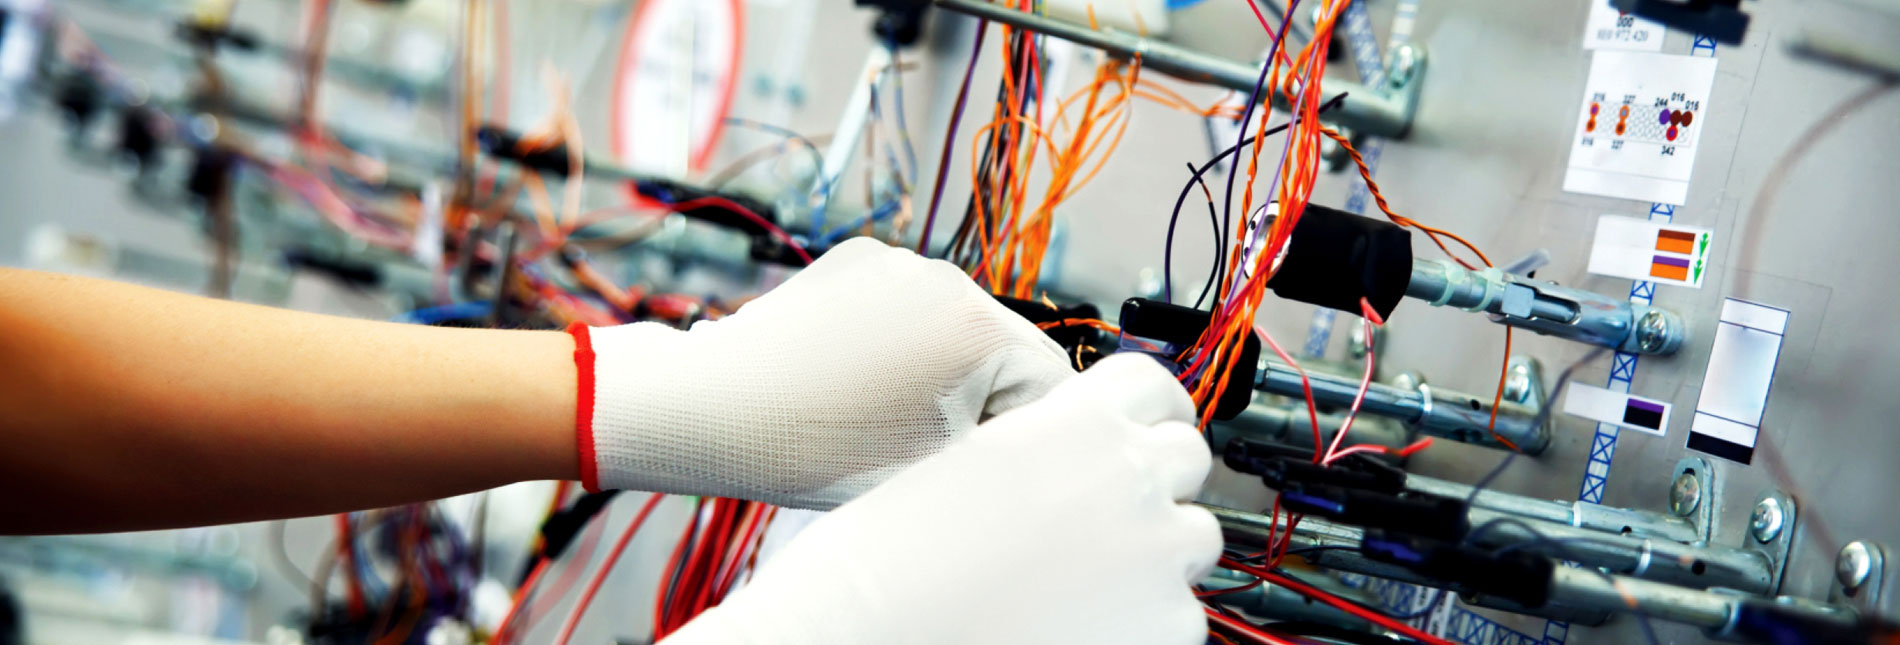 Electrical Engineering Services Plc Vfd Programming Services